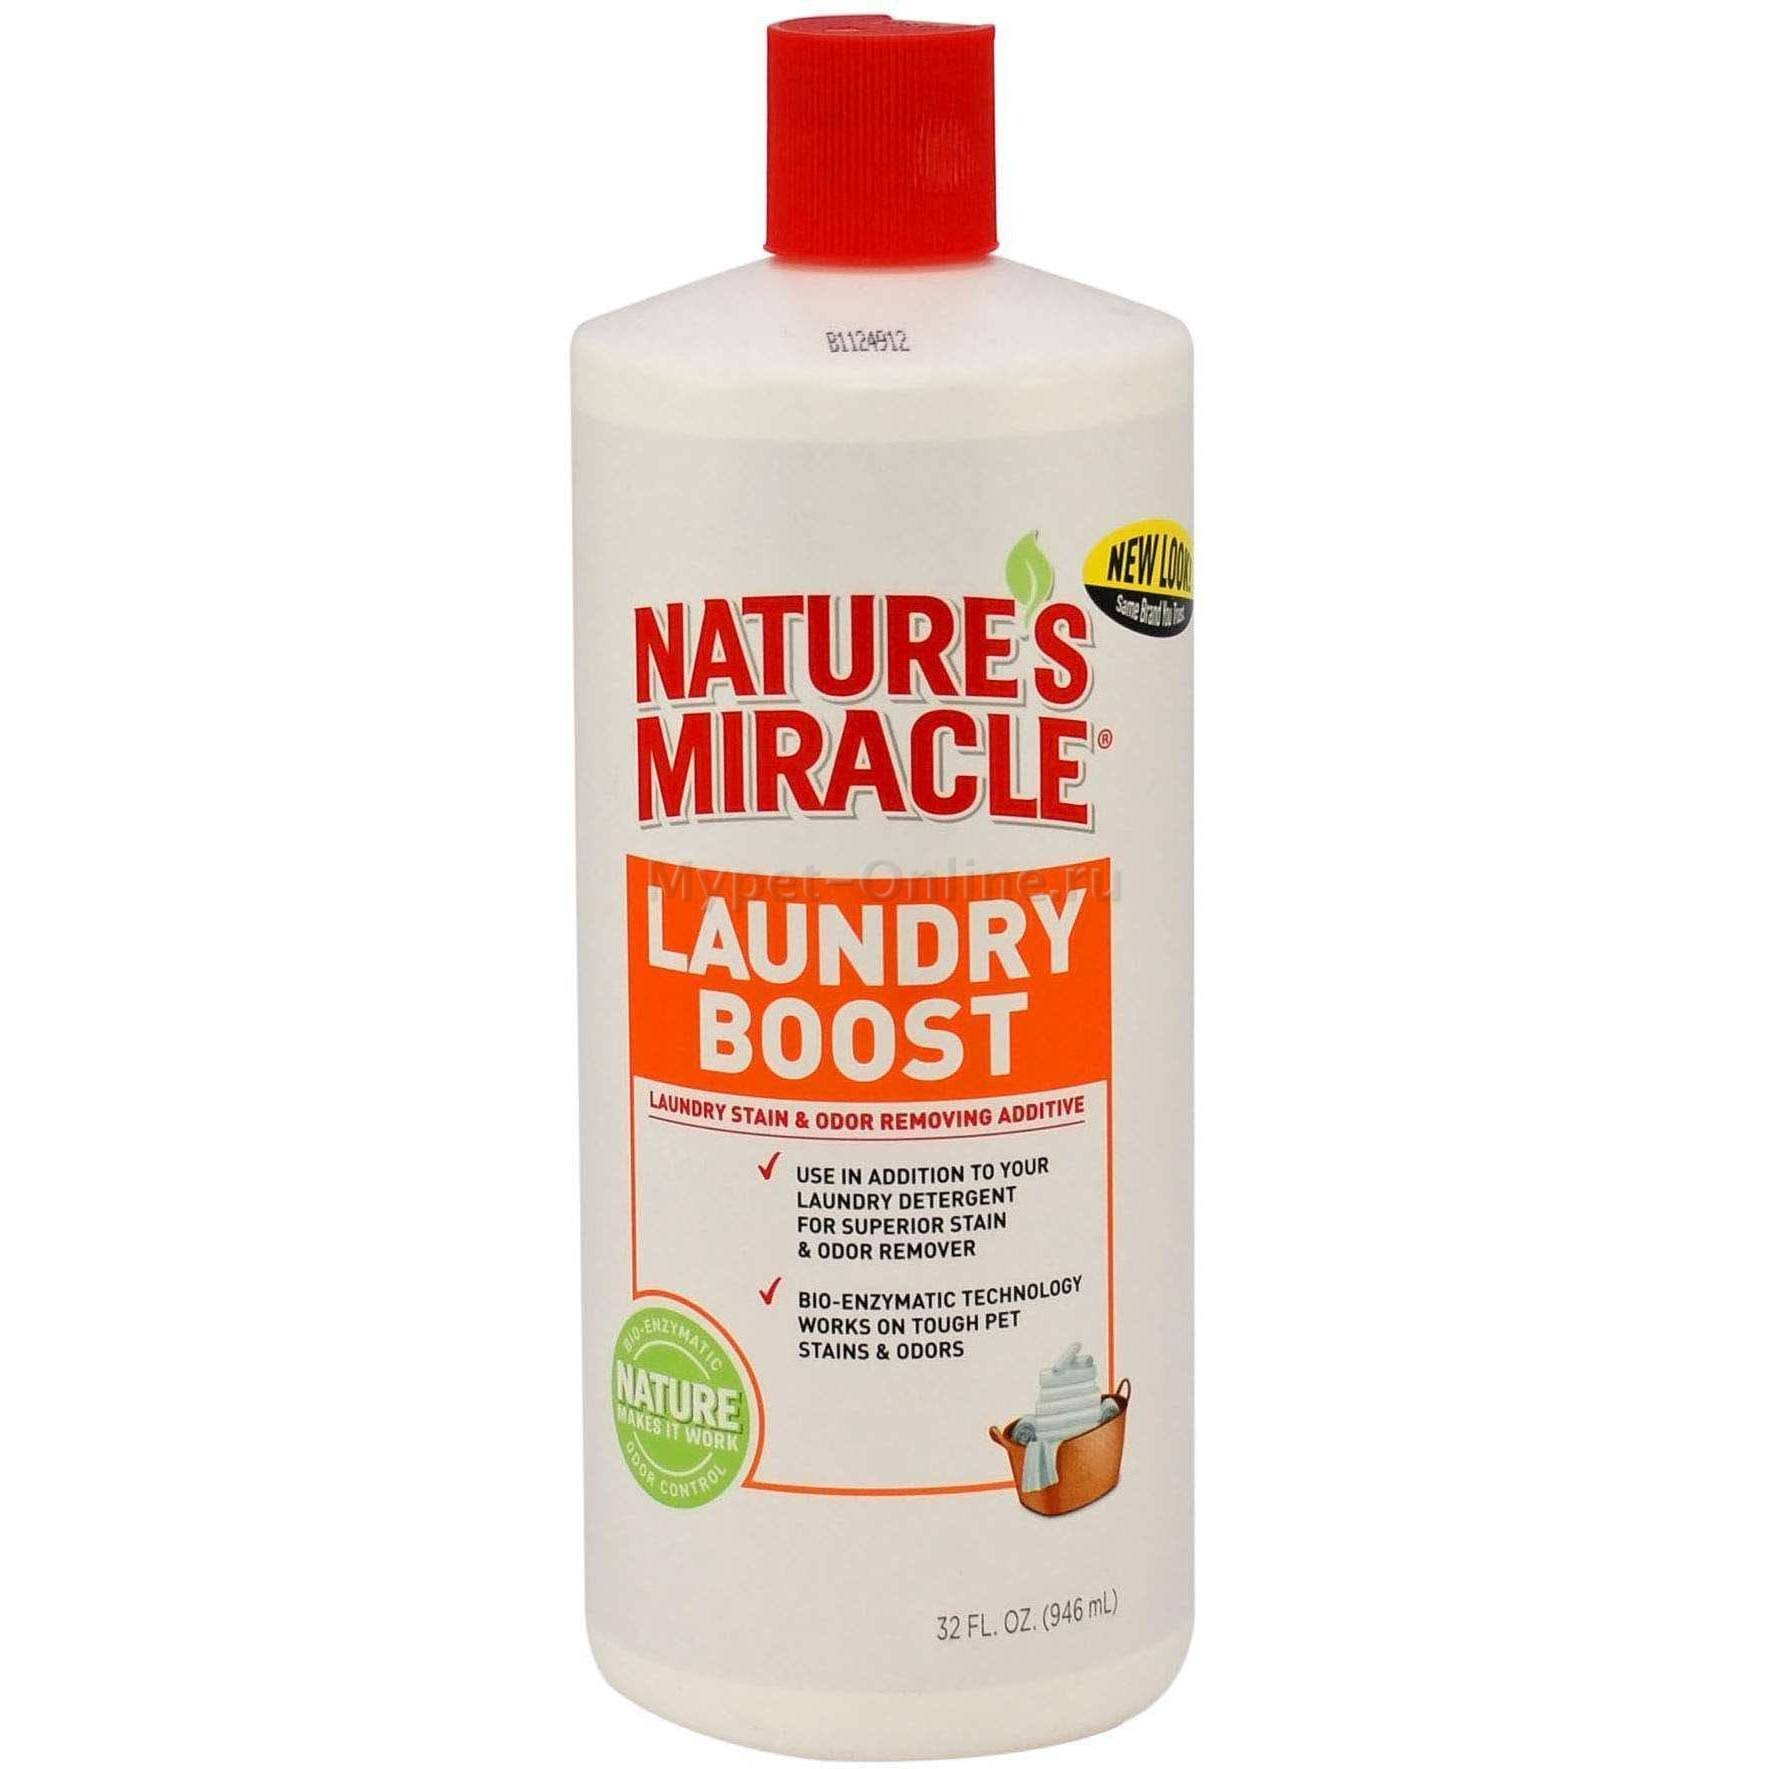 Nature's Miracle Laundry Boost Stain & Odor Removing Additive - 348ml